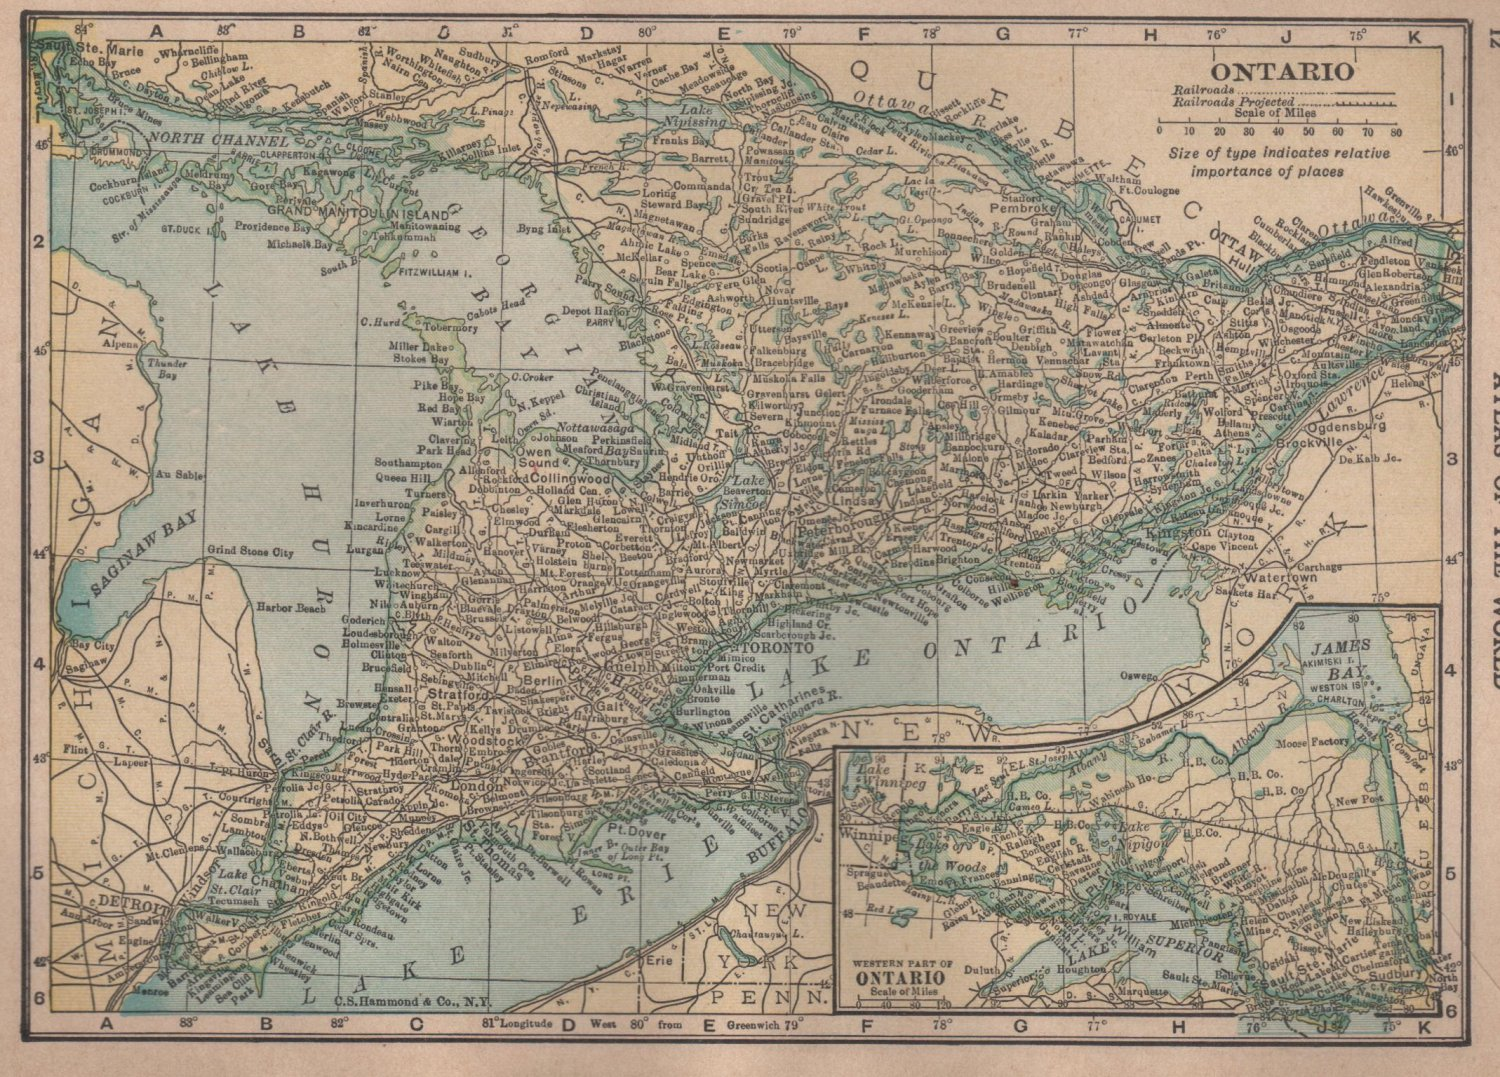 Map of Ontario Canada  C S  Hammond Atlas c 1910